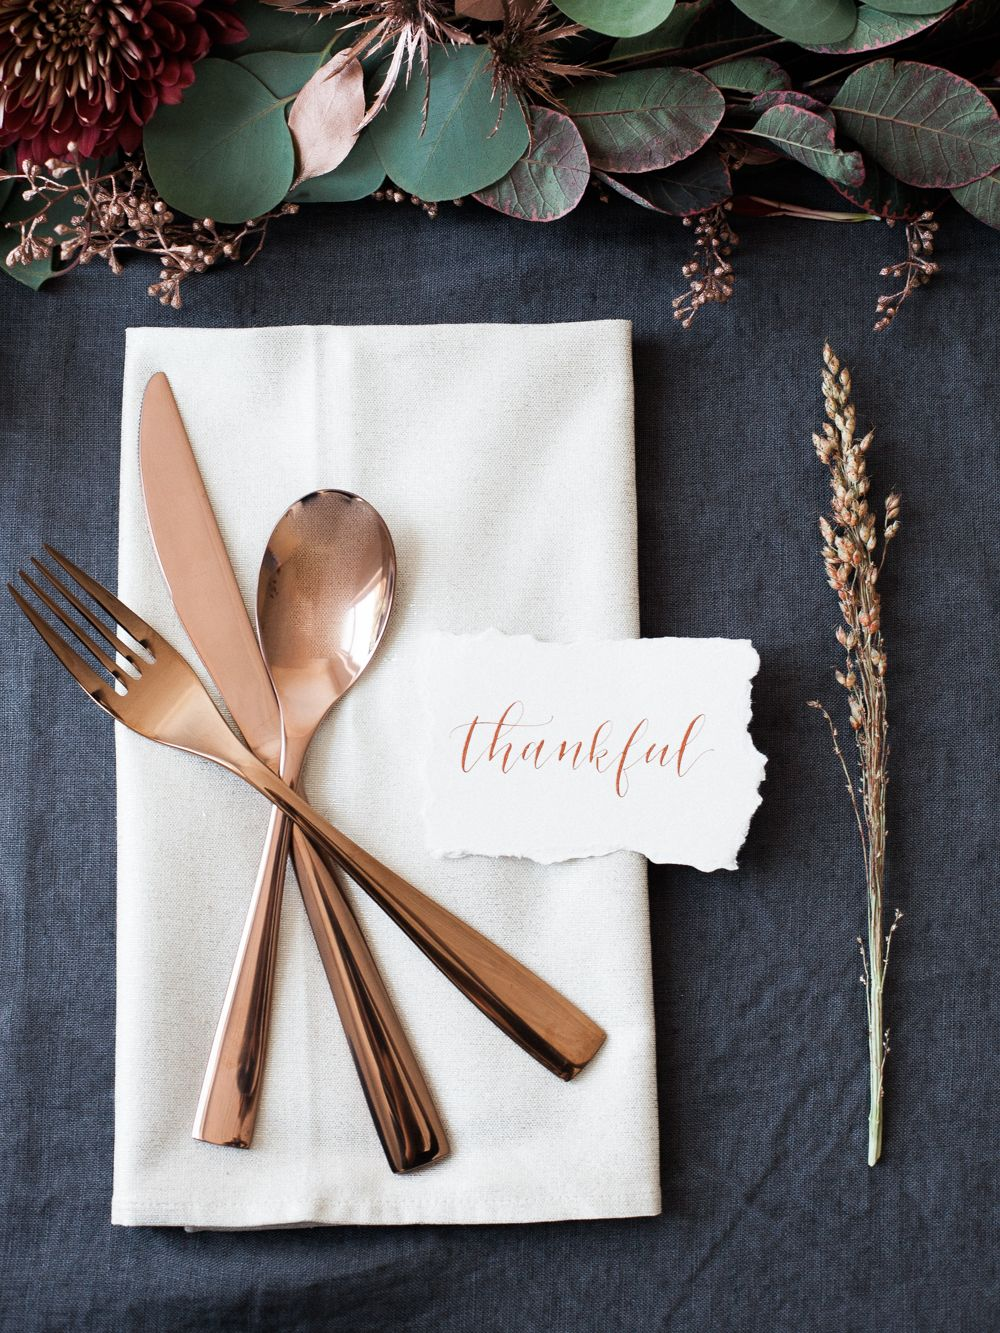 11 Simple Thanksgiving Table Decor Ideas   Thanksgiving tablescapes ...